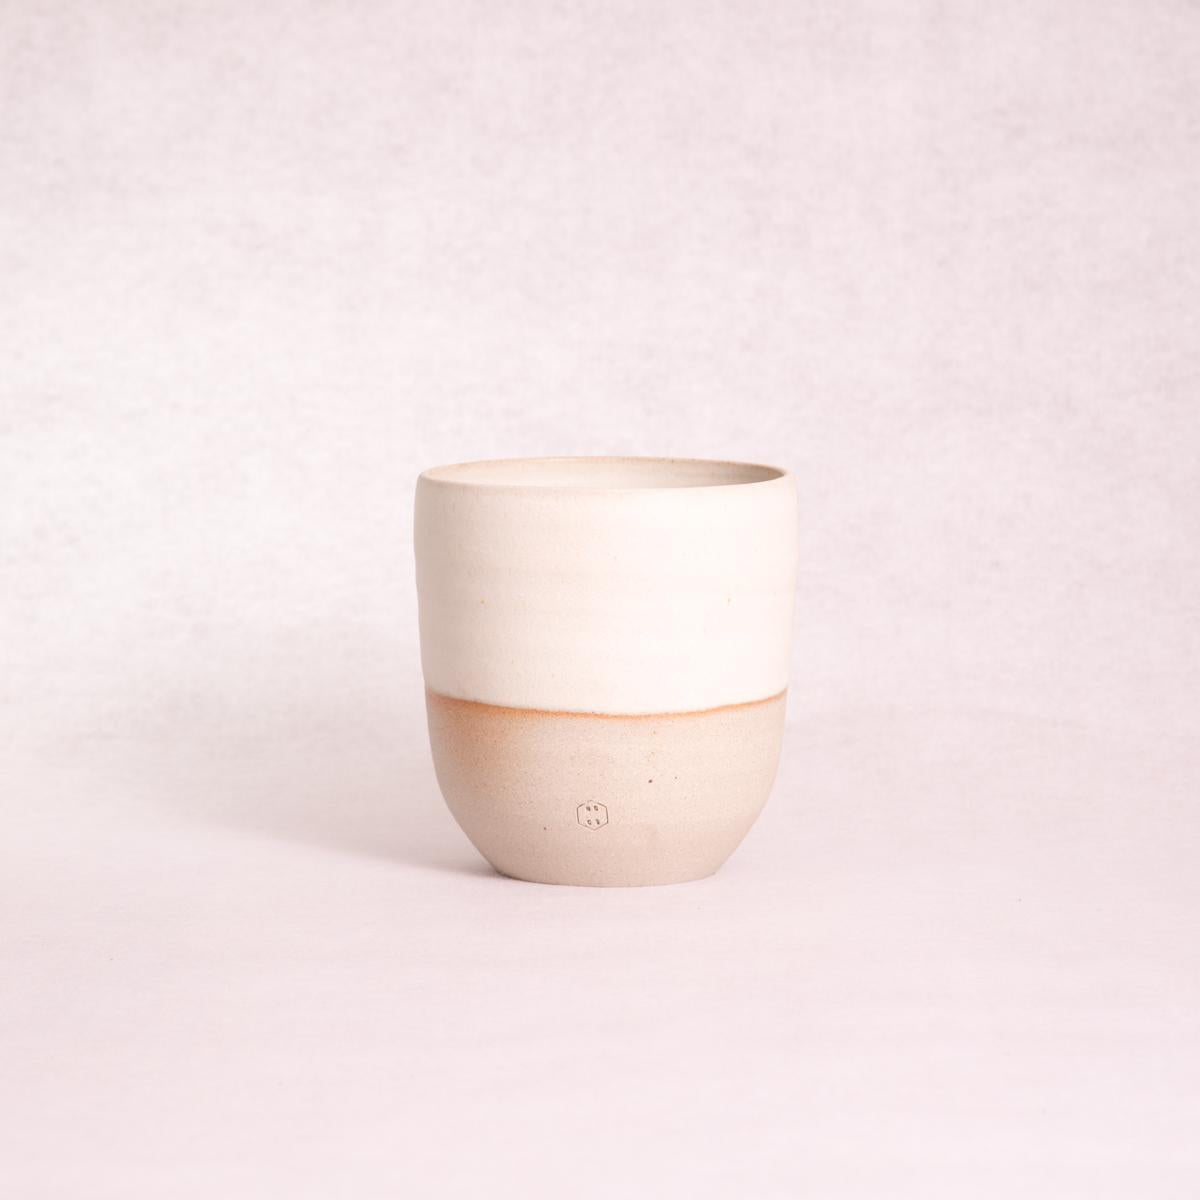 Ceramic Planter Pot - Medium (Matte White Dip) - Ceramic Planter - Throw Some Seeds - Australian gardening gifts and eco products online!